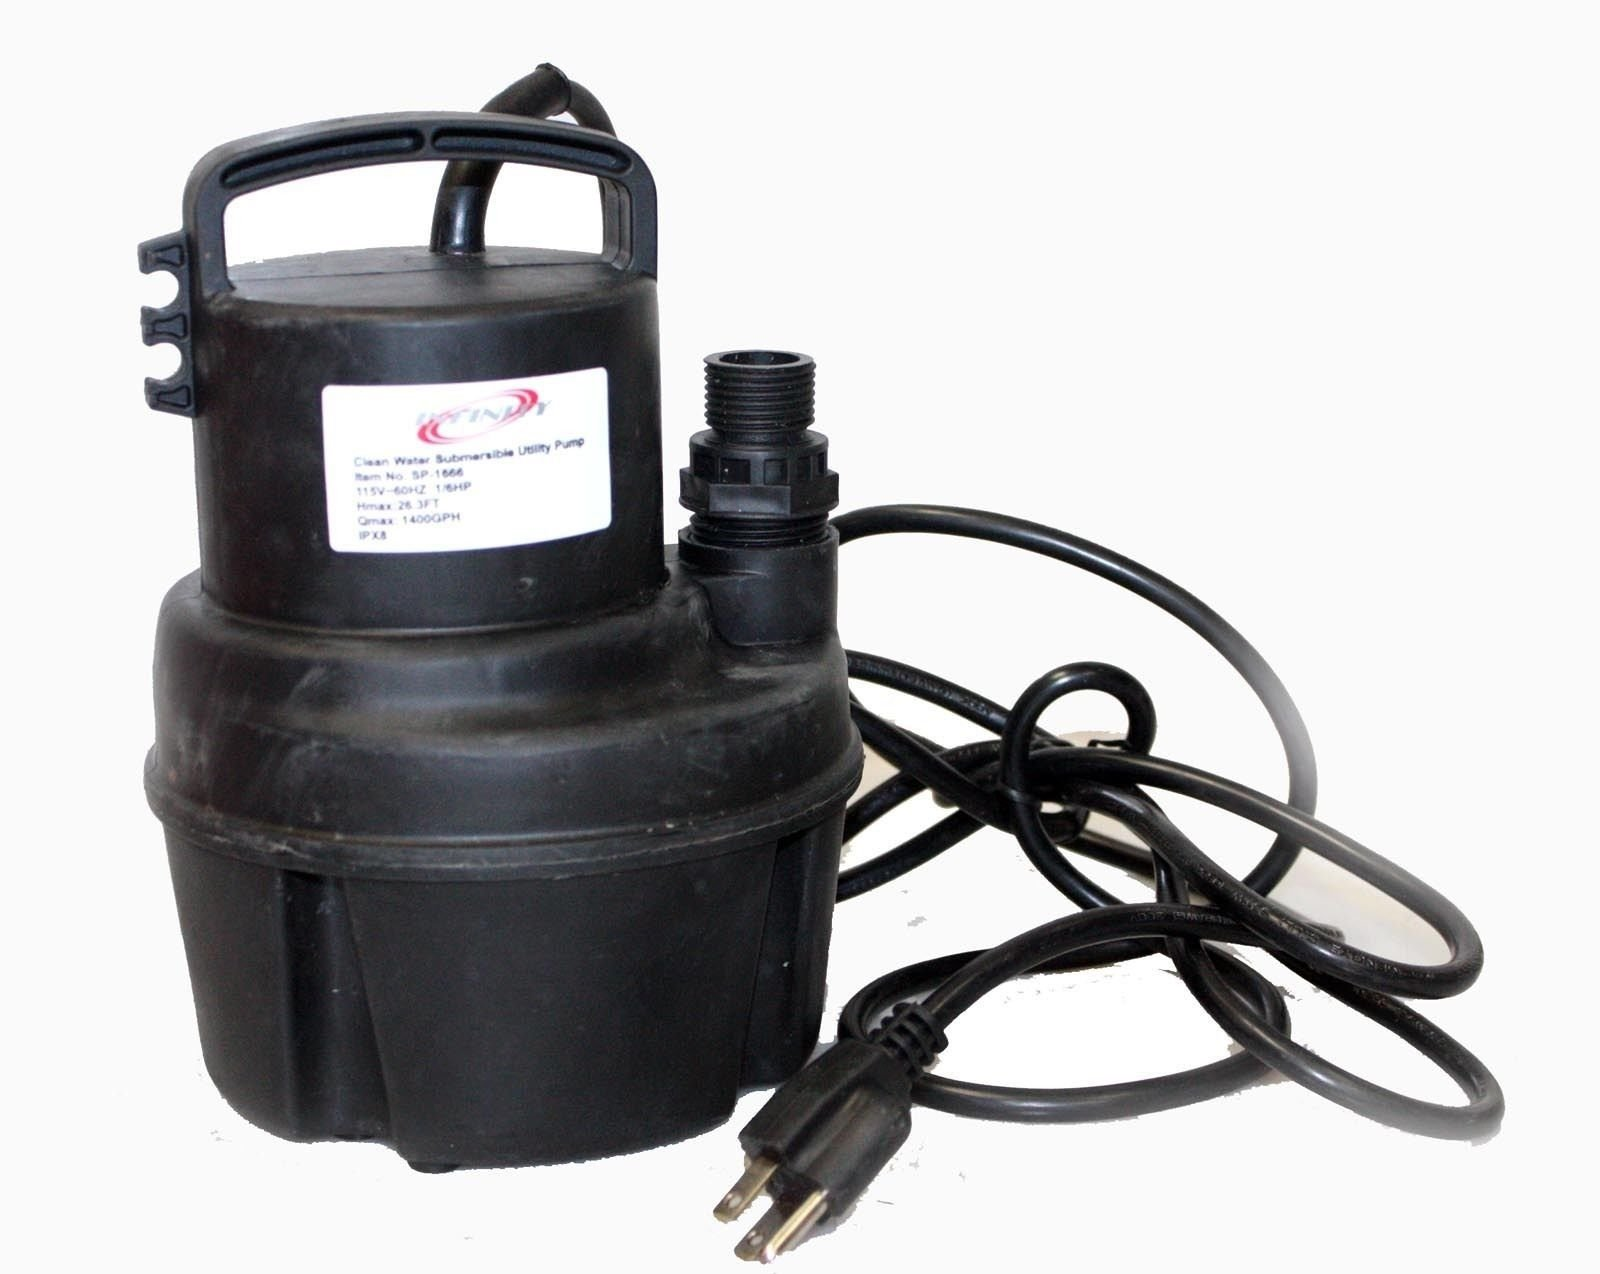 Utility 1/6 HP Clean Water Submersible Sub Sump Pump Flood Drain Pool Waterfall By Allgoodsdelight365 by allgoodsdelight365